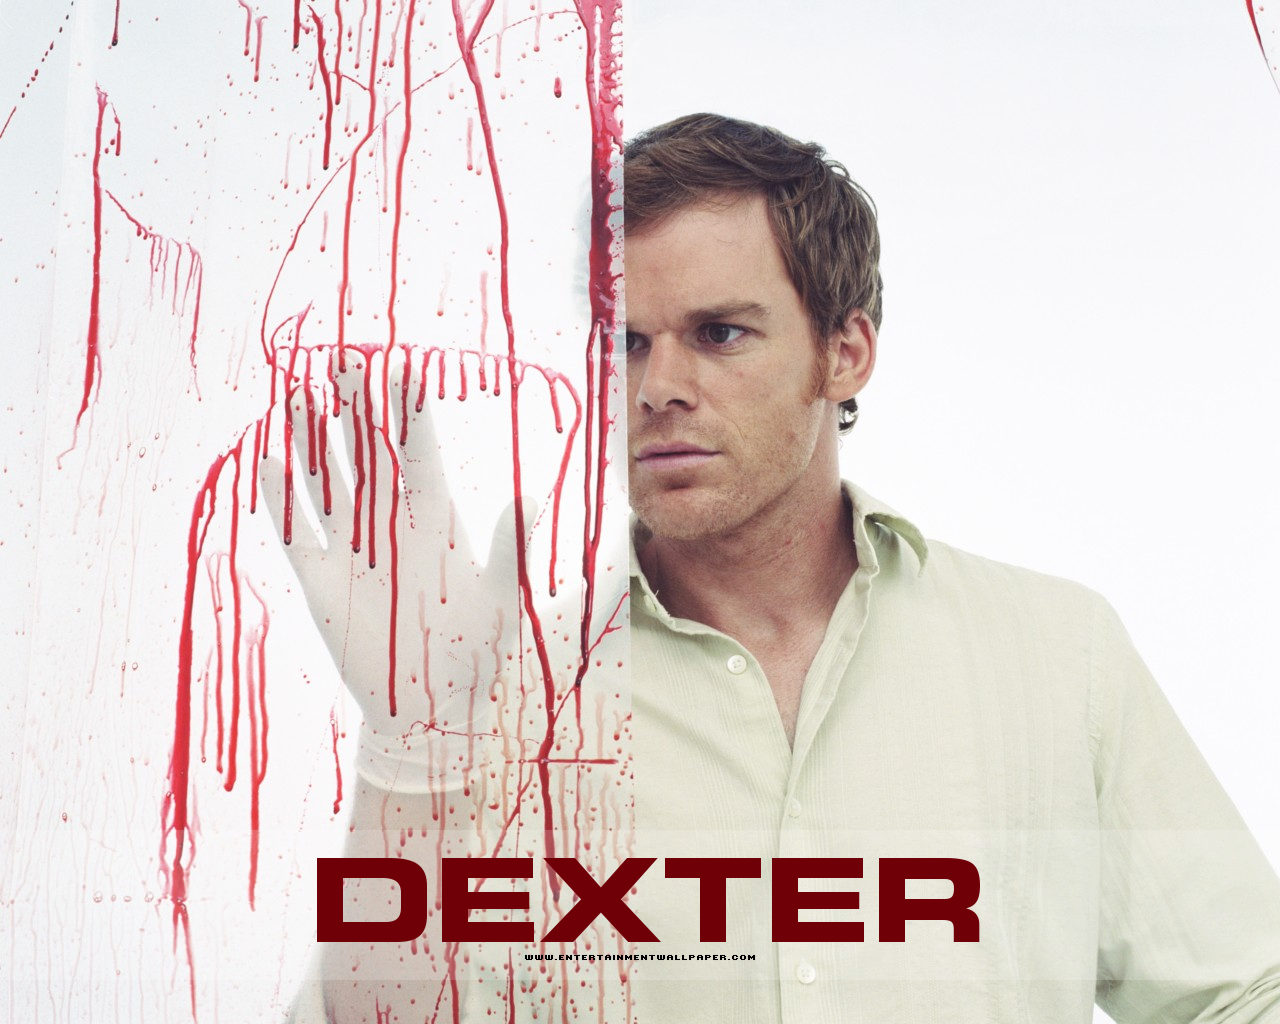 Dexter – Todas as Temporadas Completas – Dublado / Legendado